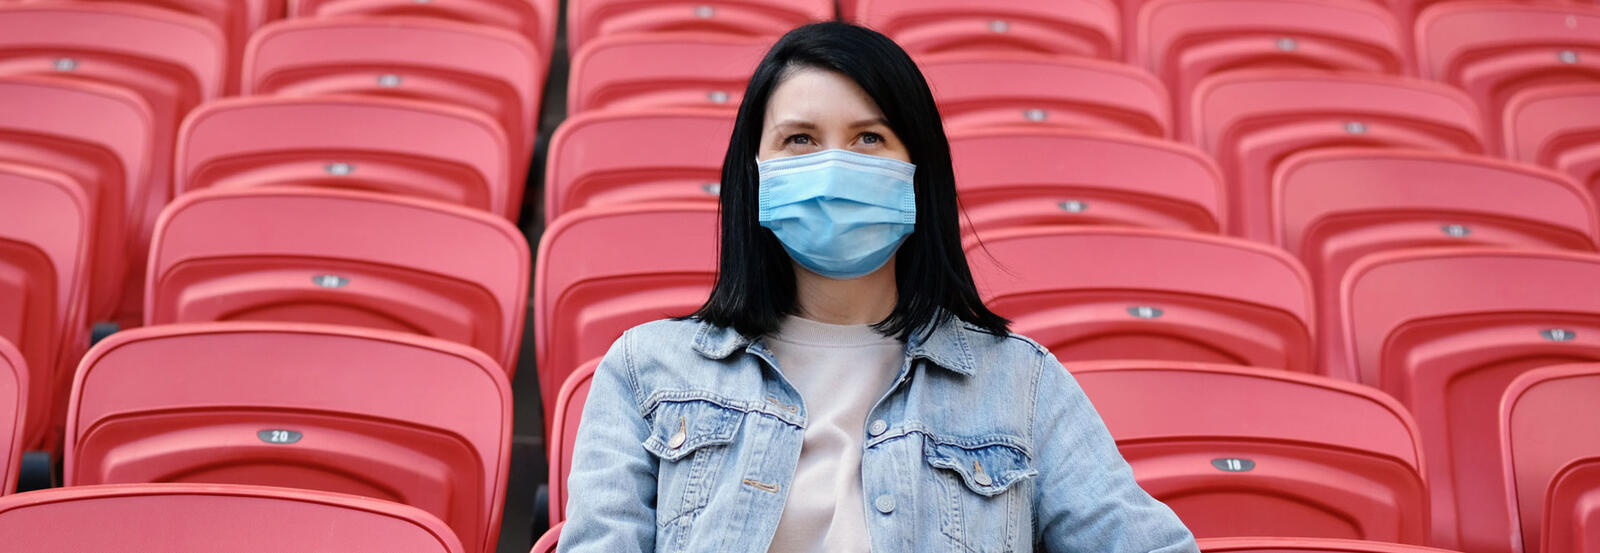 Woman with mask sitting in stadium bleachers